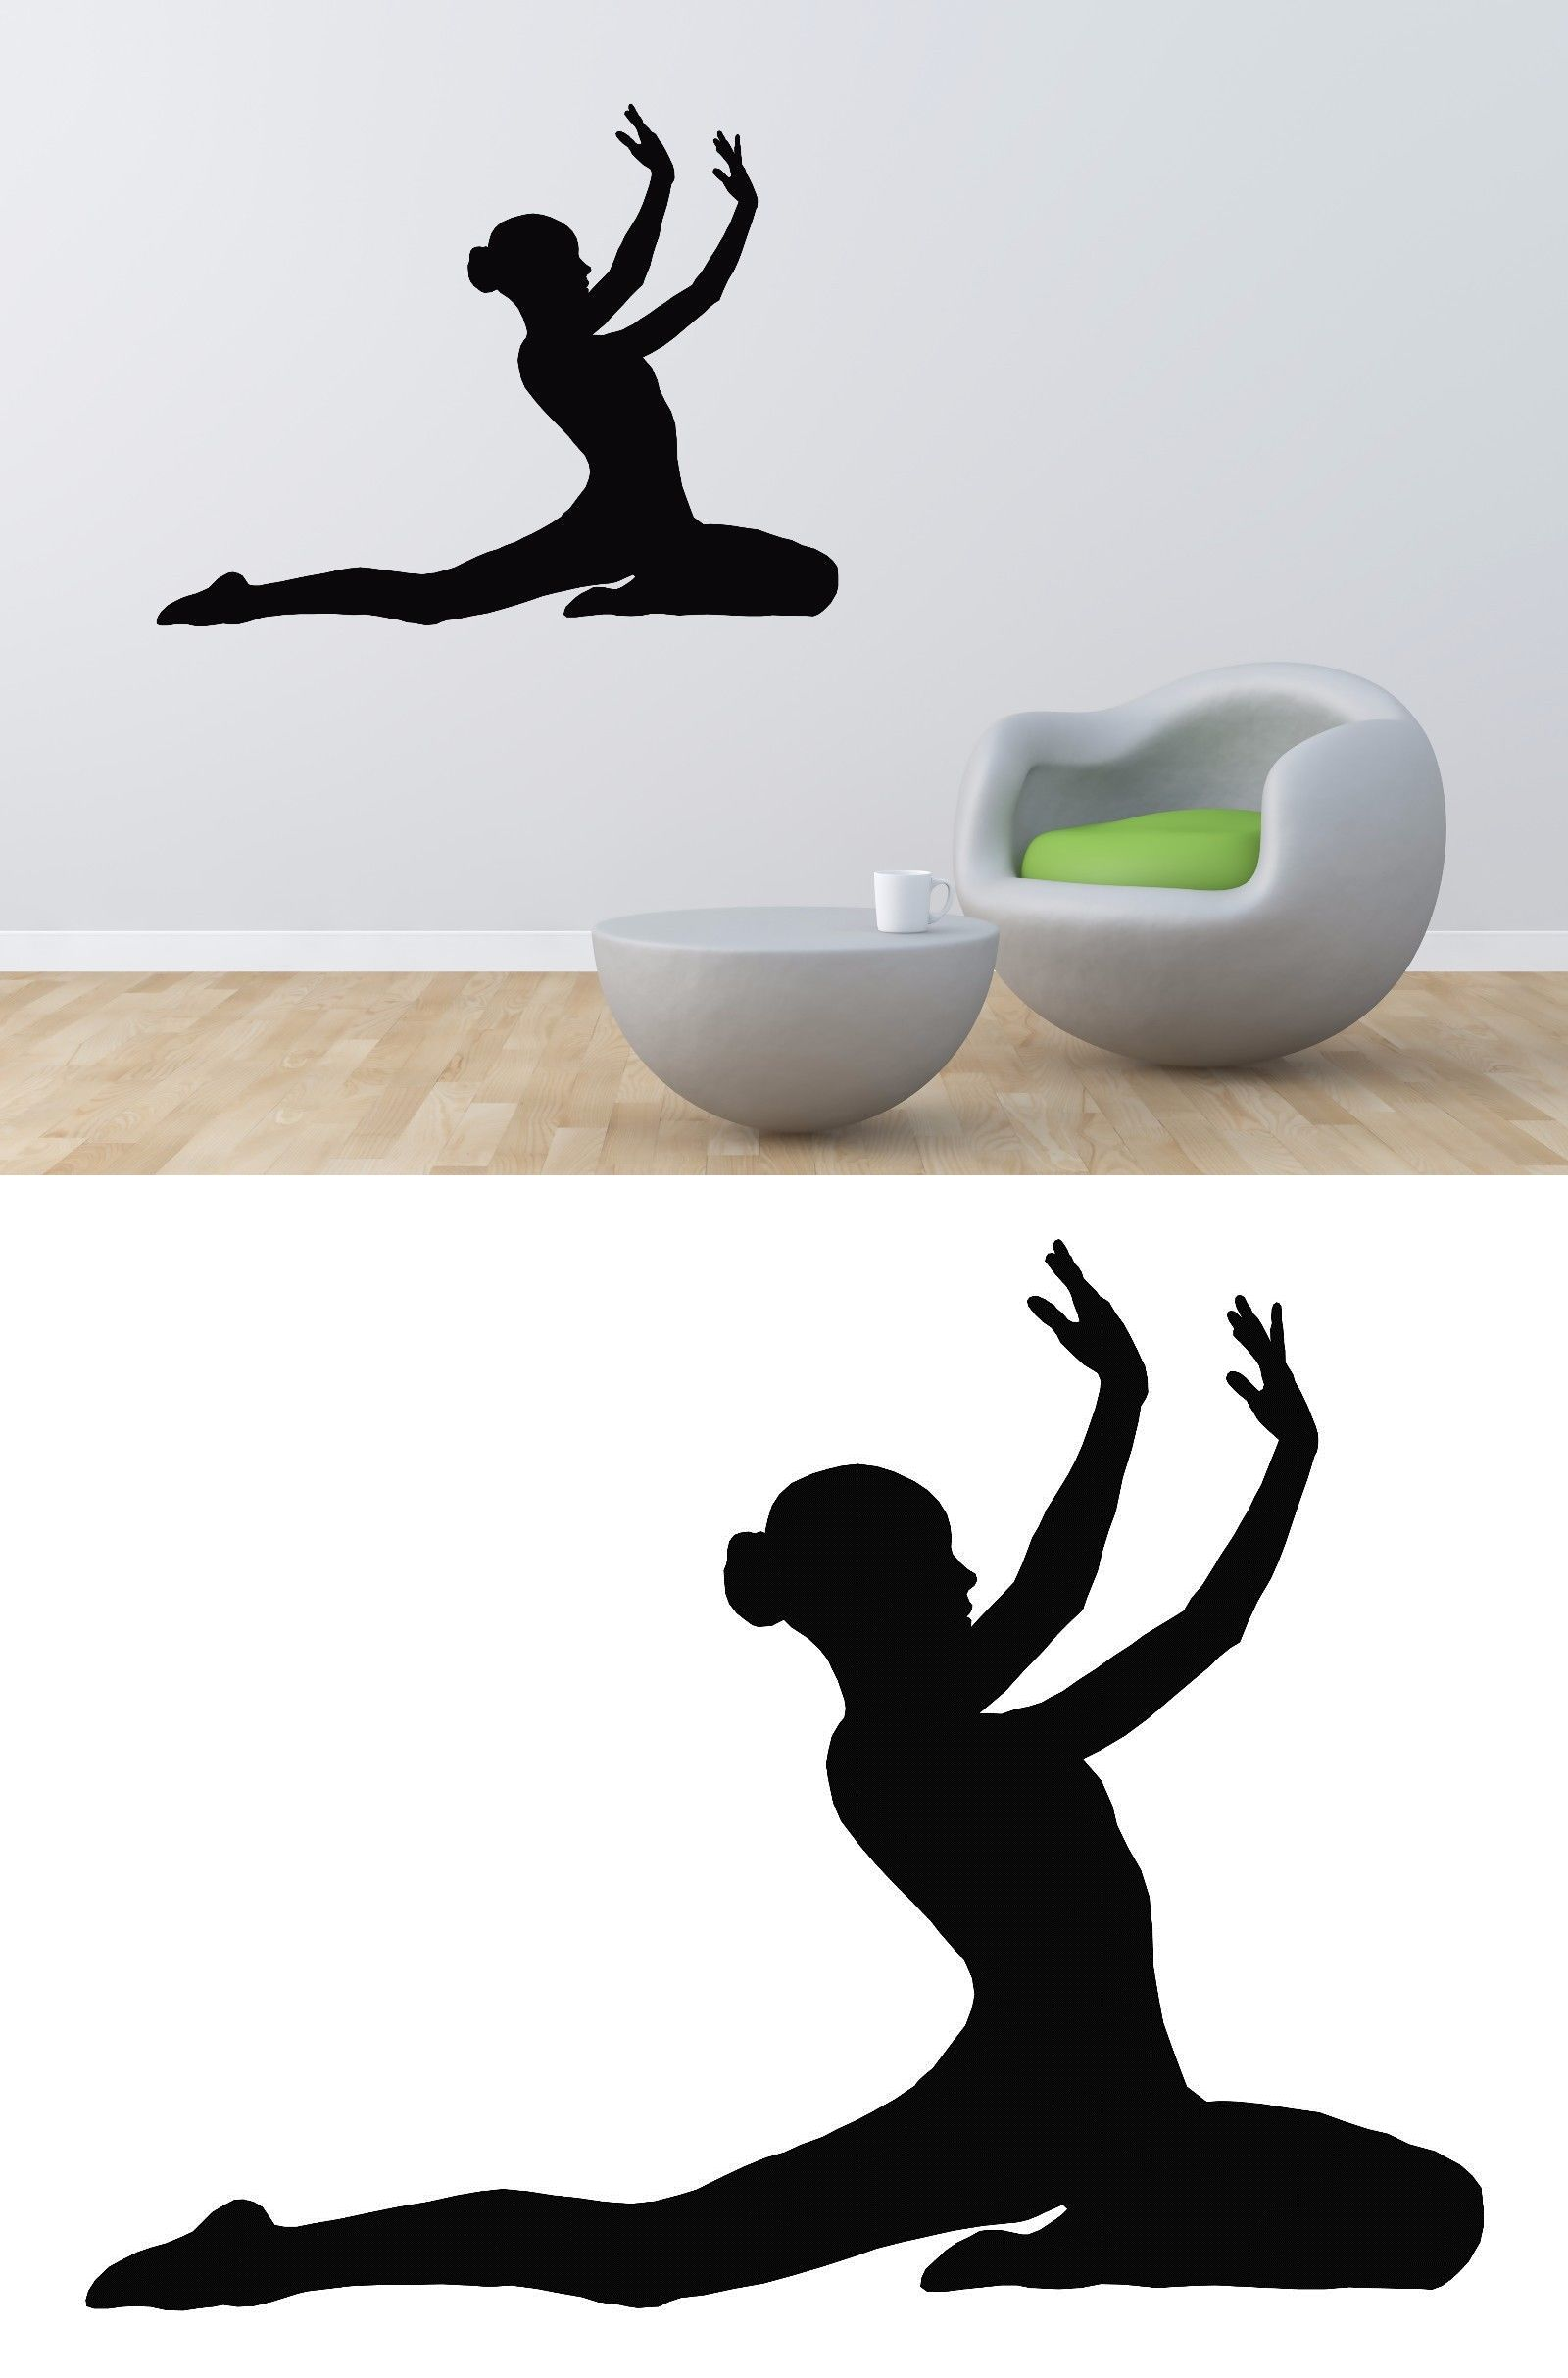 Woman silhouette decal removable wall sticker home decor art ebay - Decals Stickers And Vinyl Art 159889 Gymnast Wall Decal Vinyl Gymnastics Sticker Girl Room Decor